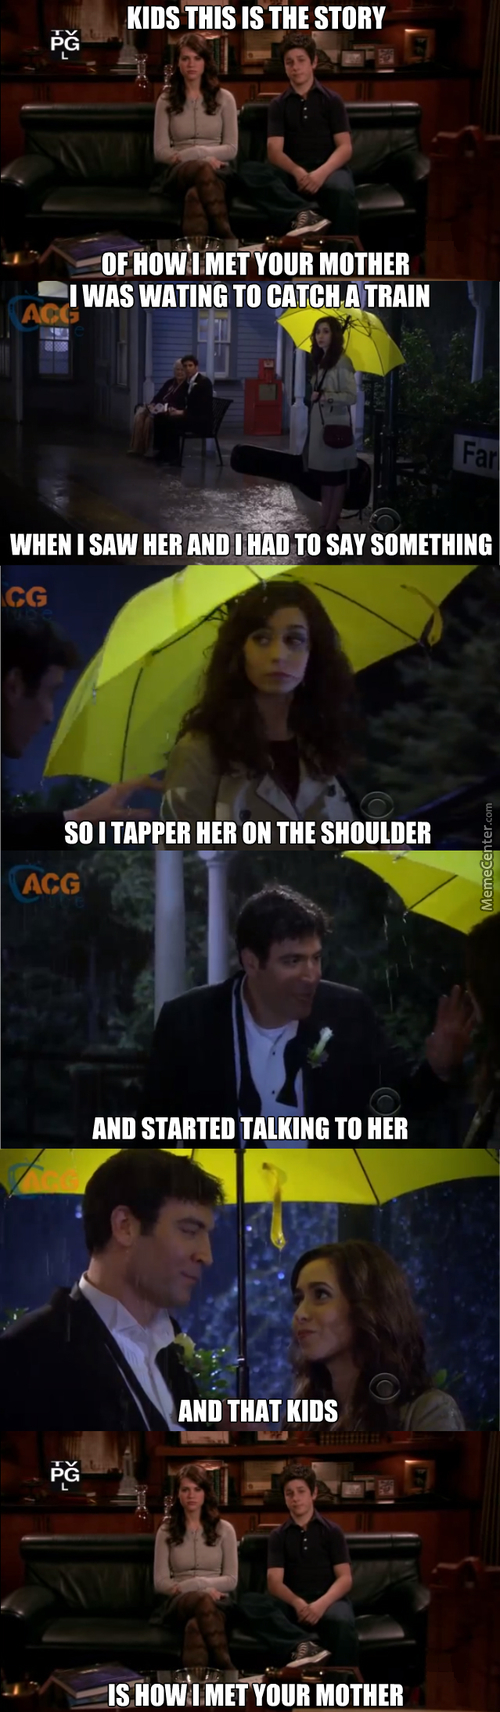 How I Met Your Mother How It Should Have Ended, There I Just Saved You 9 Seasons